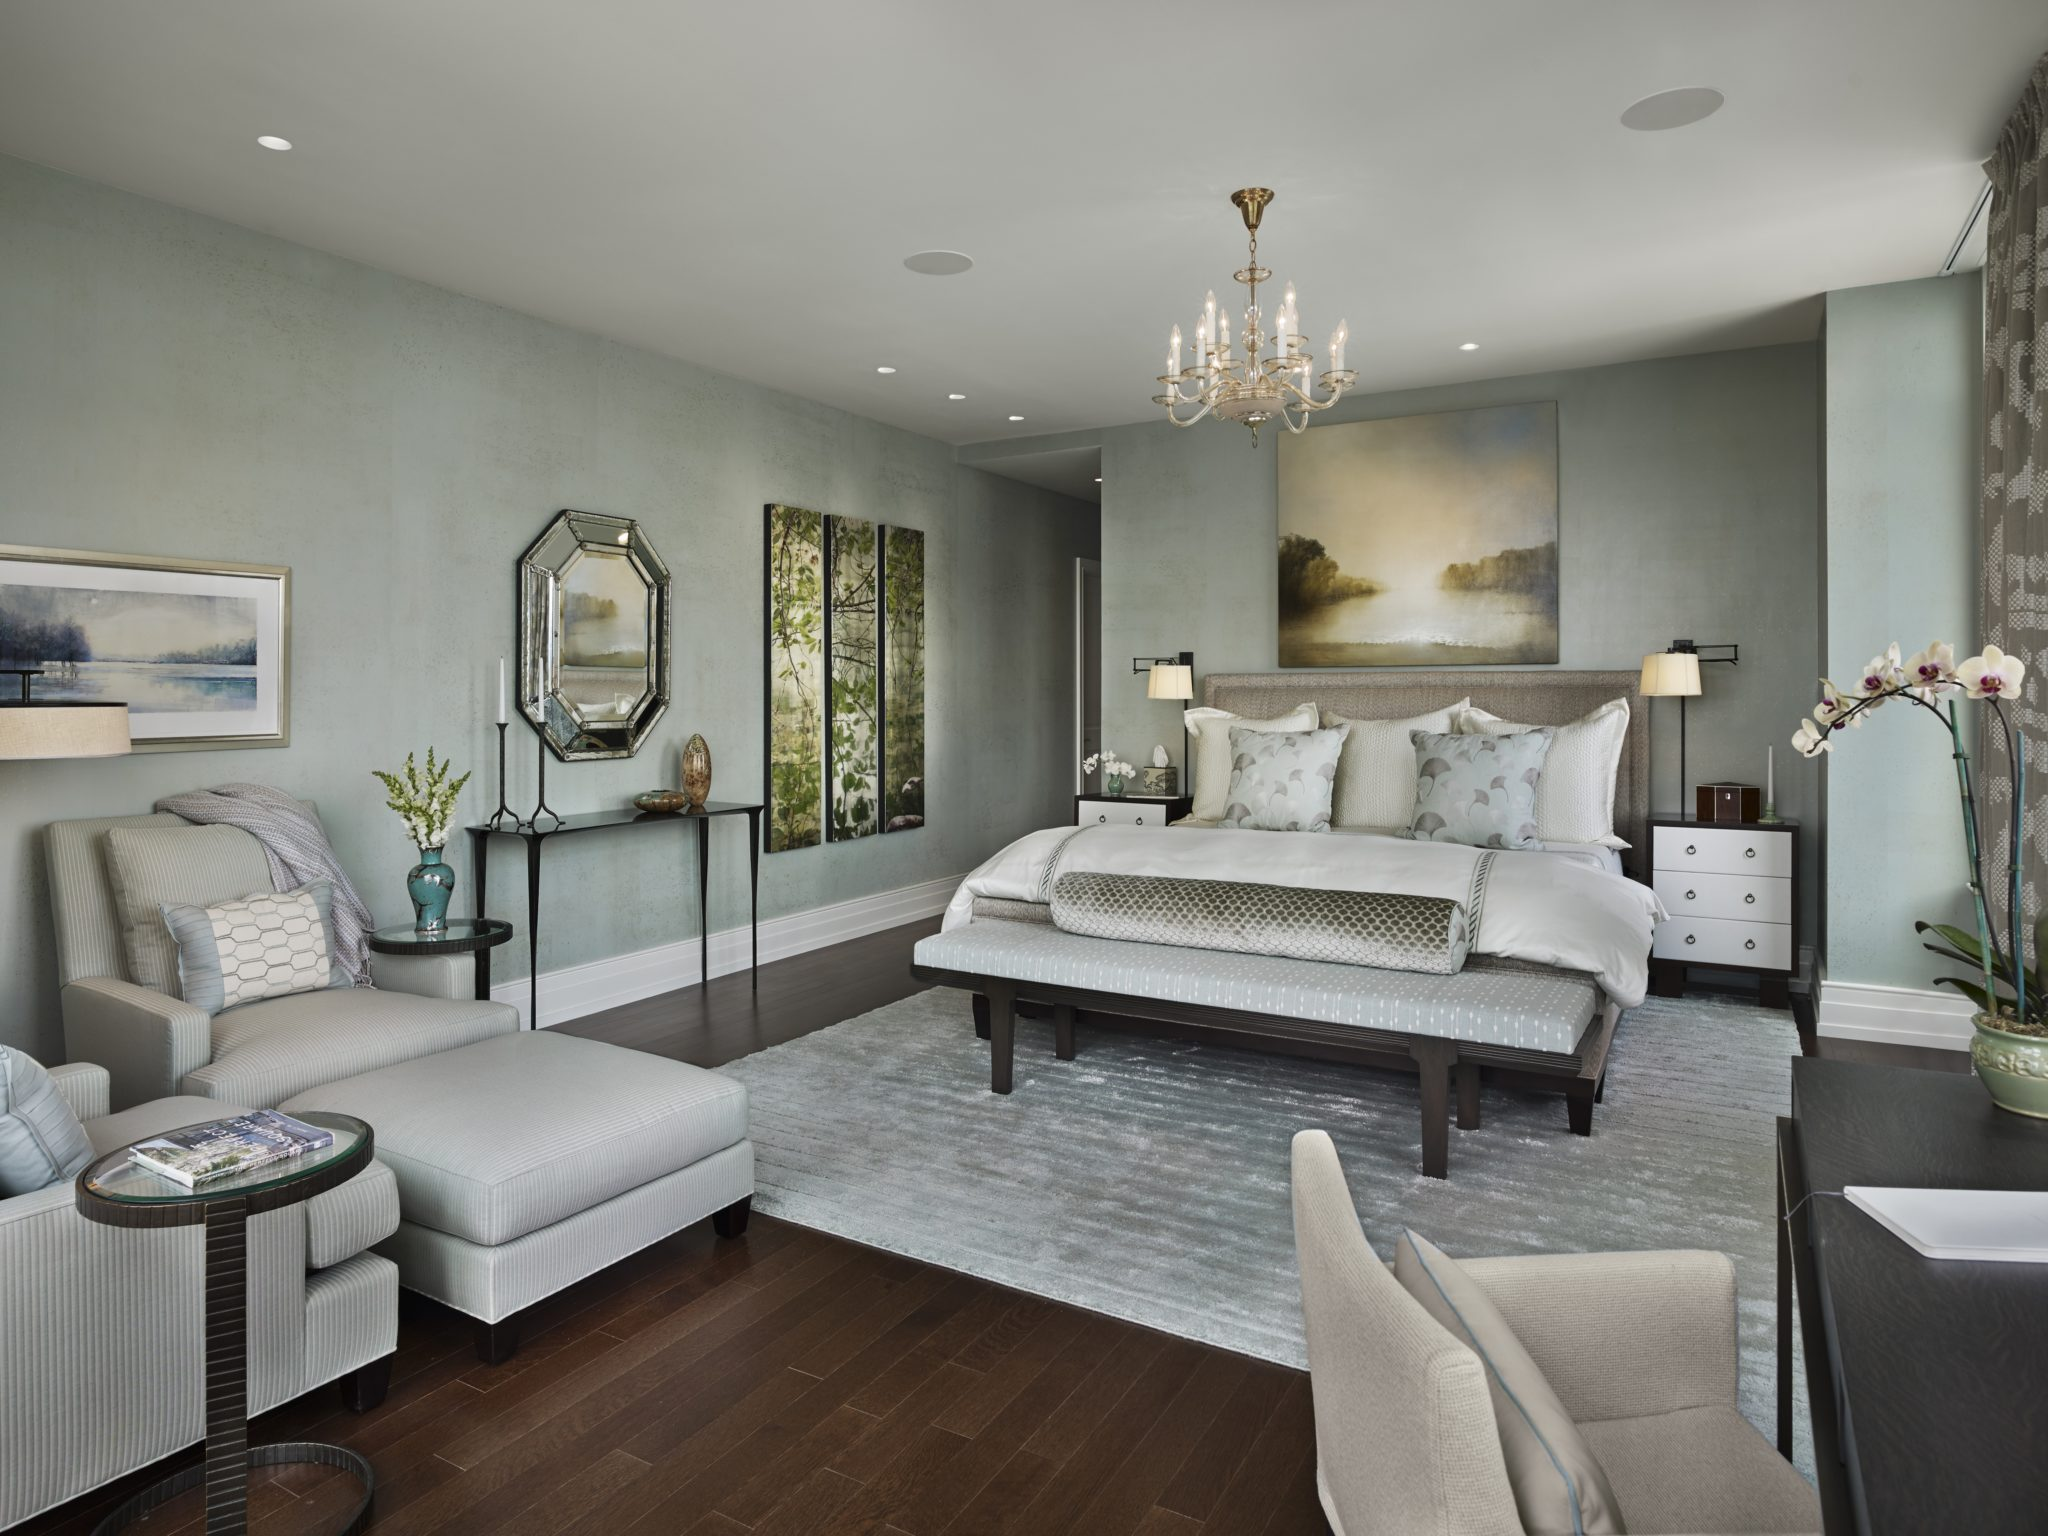 Rittenhouse Square Residence by Marguerite Rodgers